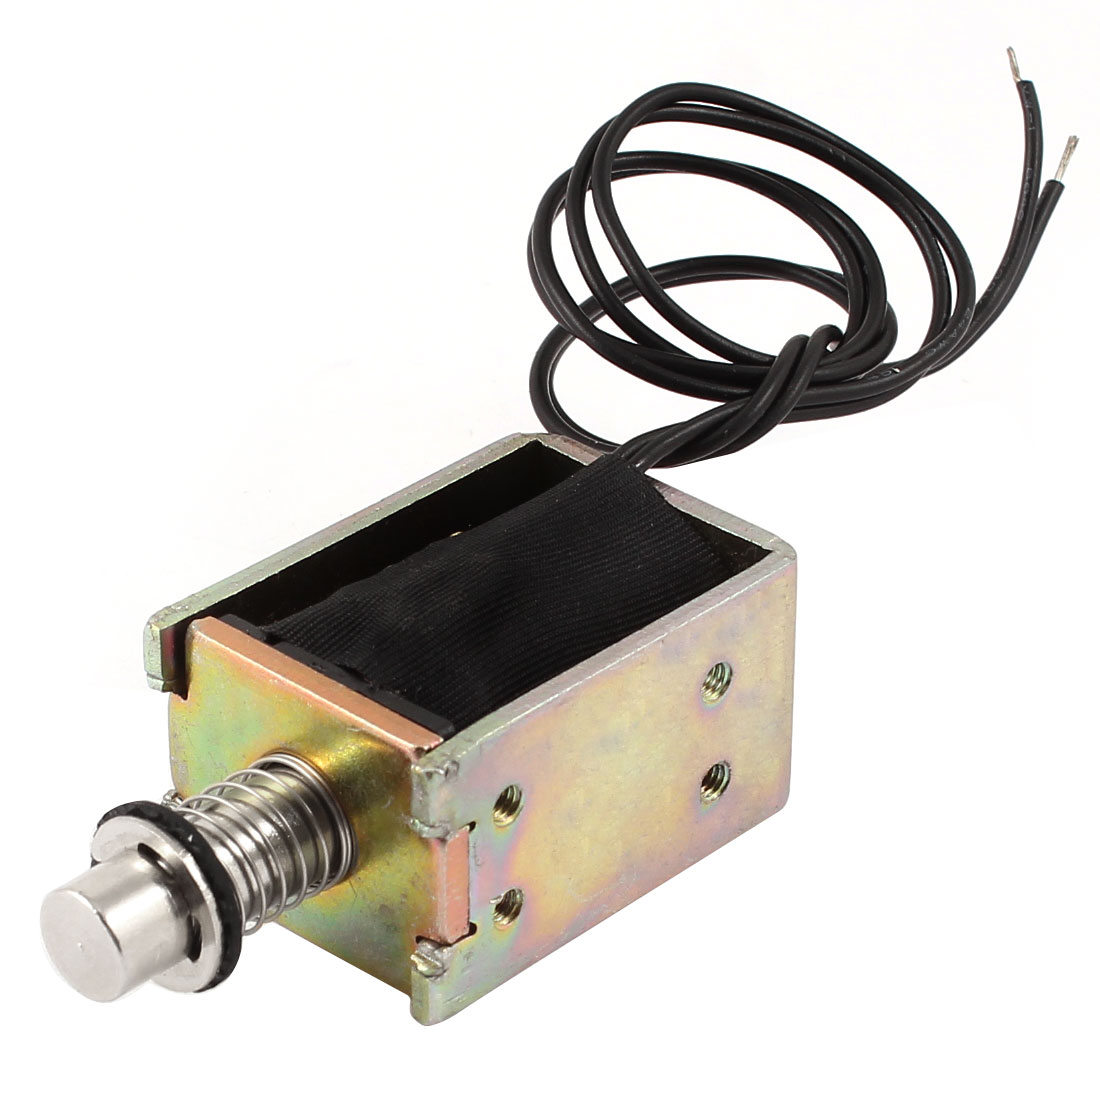 DC 24V 1.84A 44.3W 8mm 400g Pull Type Open Frame Linear Motion Solenoid Electromagnet Actuator